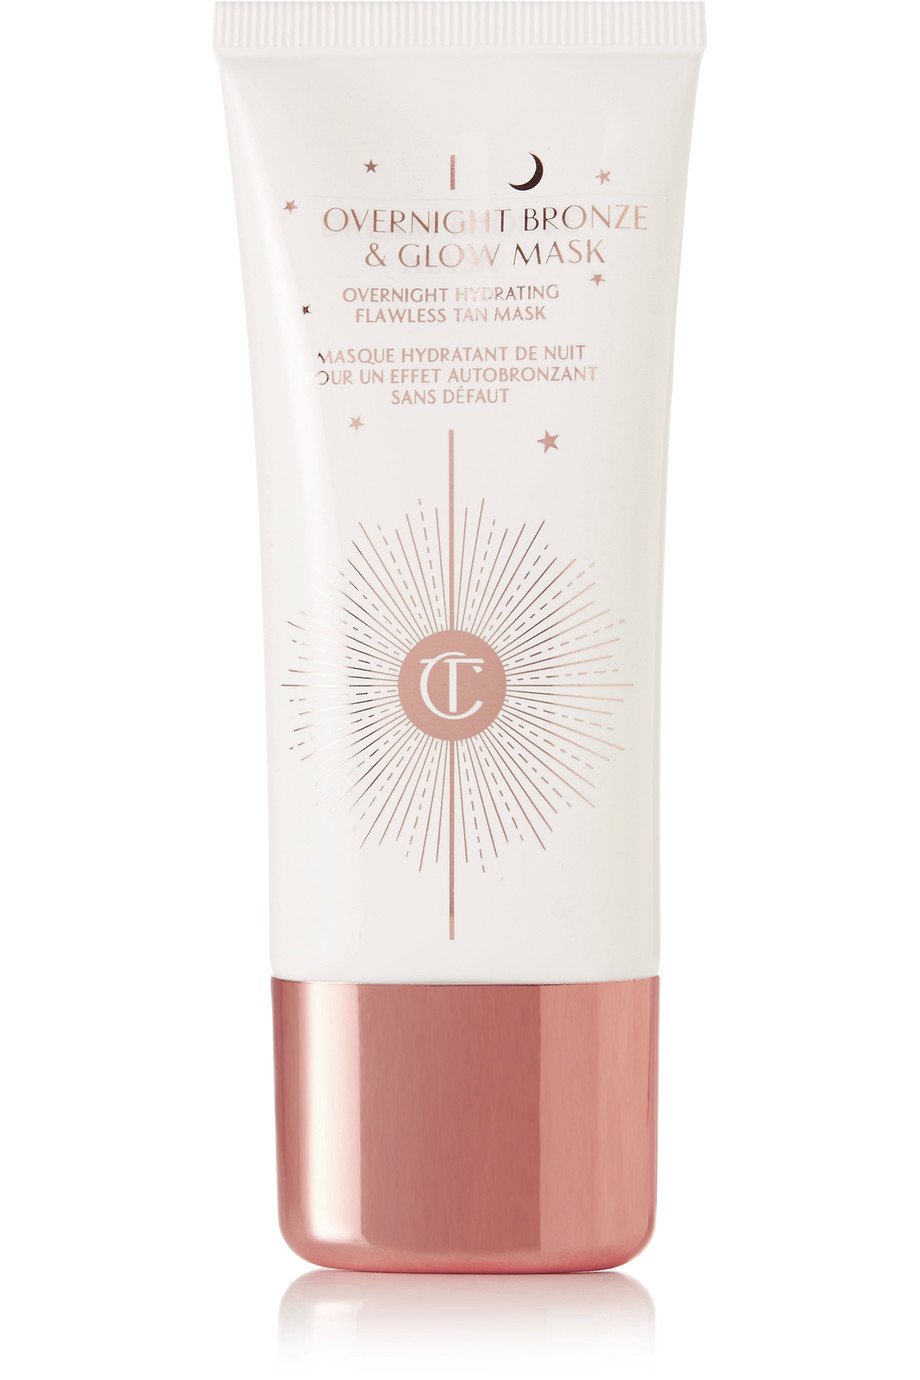 Charlotte Tilbury Overnight Bronze & Glow Mask £38.00 from Net-a-Porter   Go to bed tired and pale, wake up glowing and gorgeous...